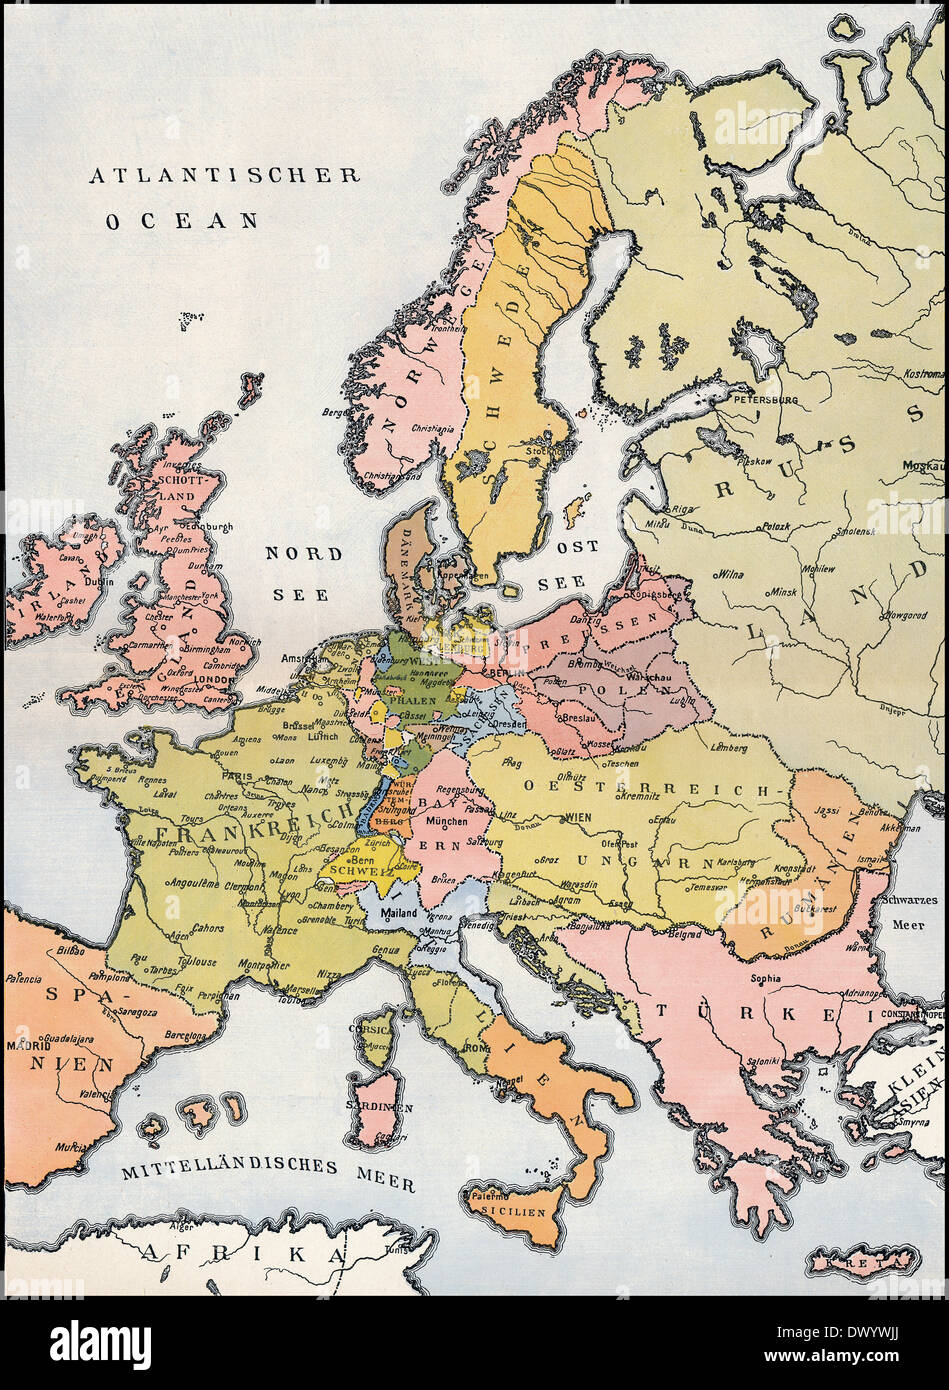 19th century map of europe Map of Europe, 1809, Historical illustration, 19th Century Stock